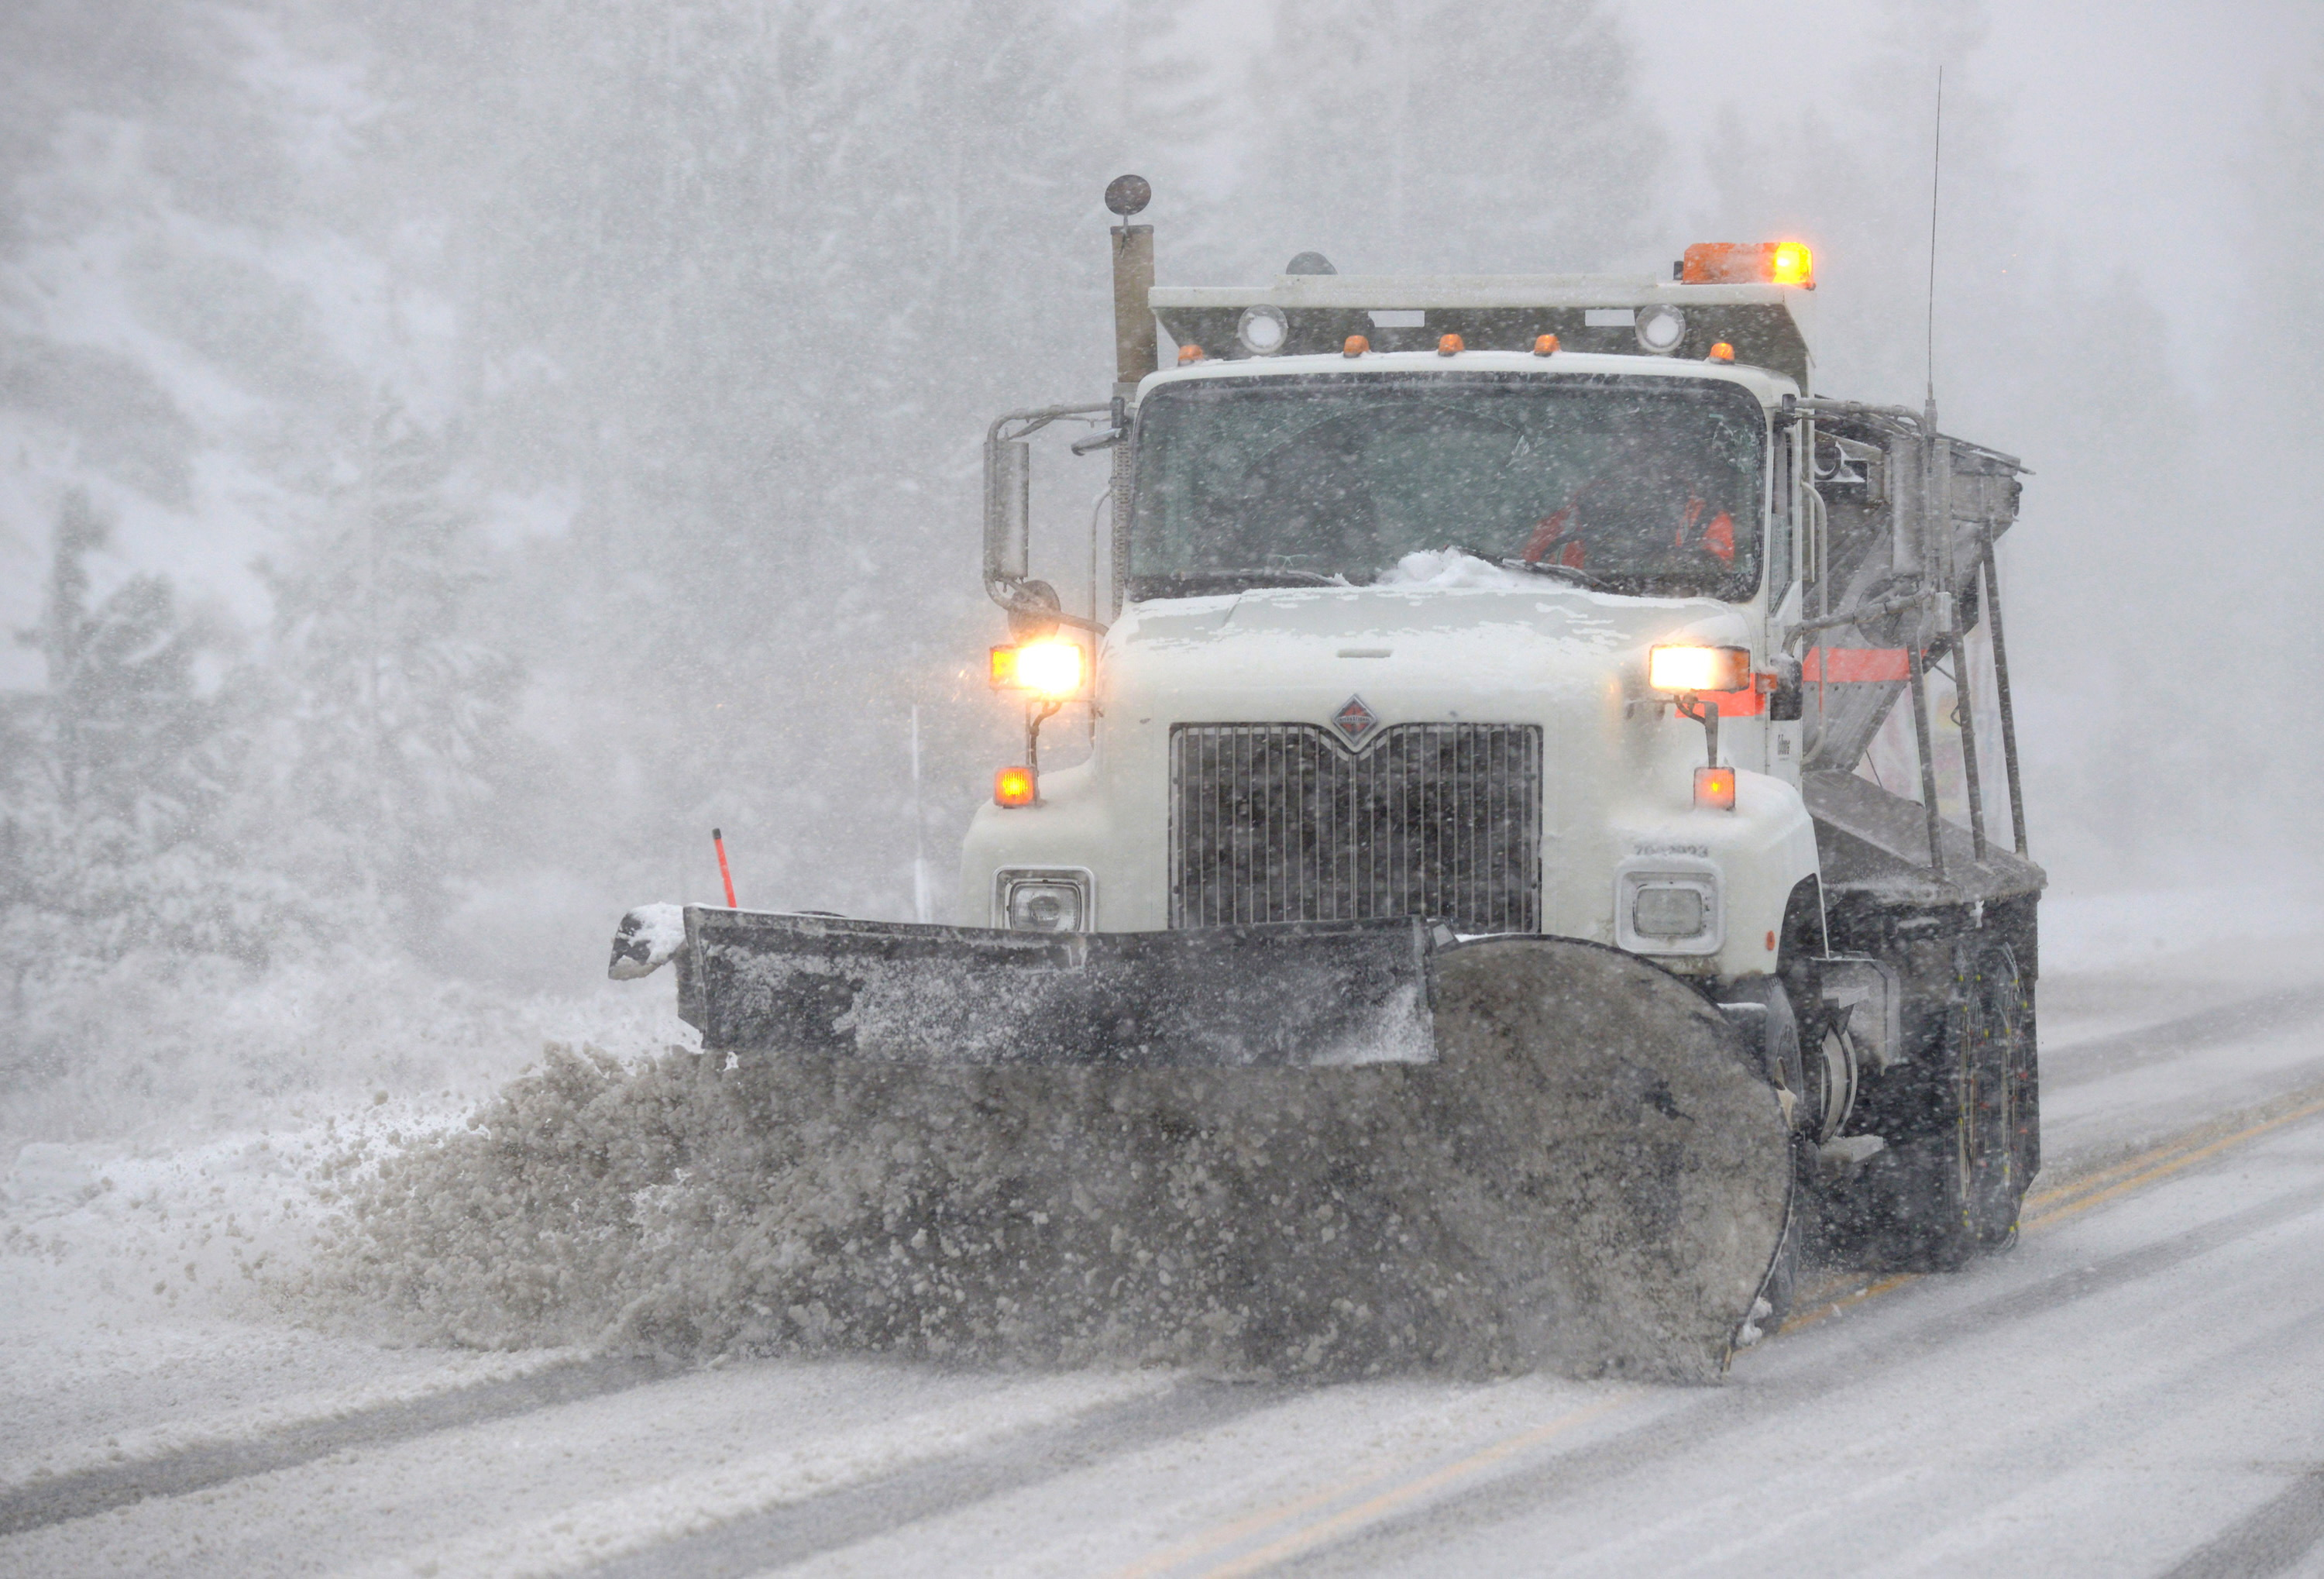 A Caltrans snowplow clears Highway 88 in Woodford, California Nov. 24, 2015